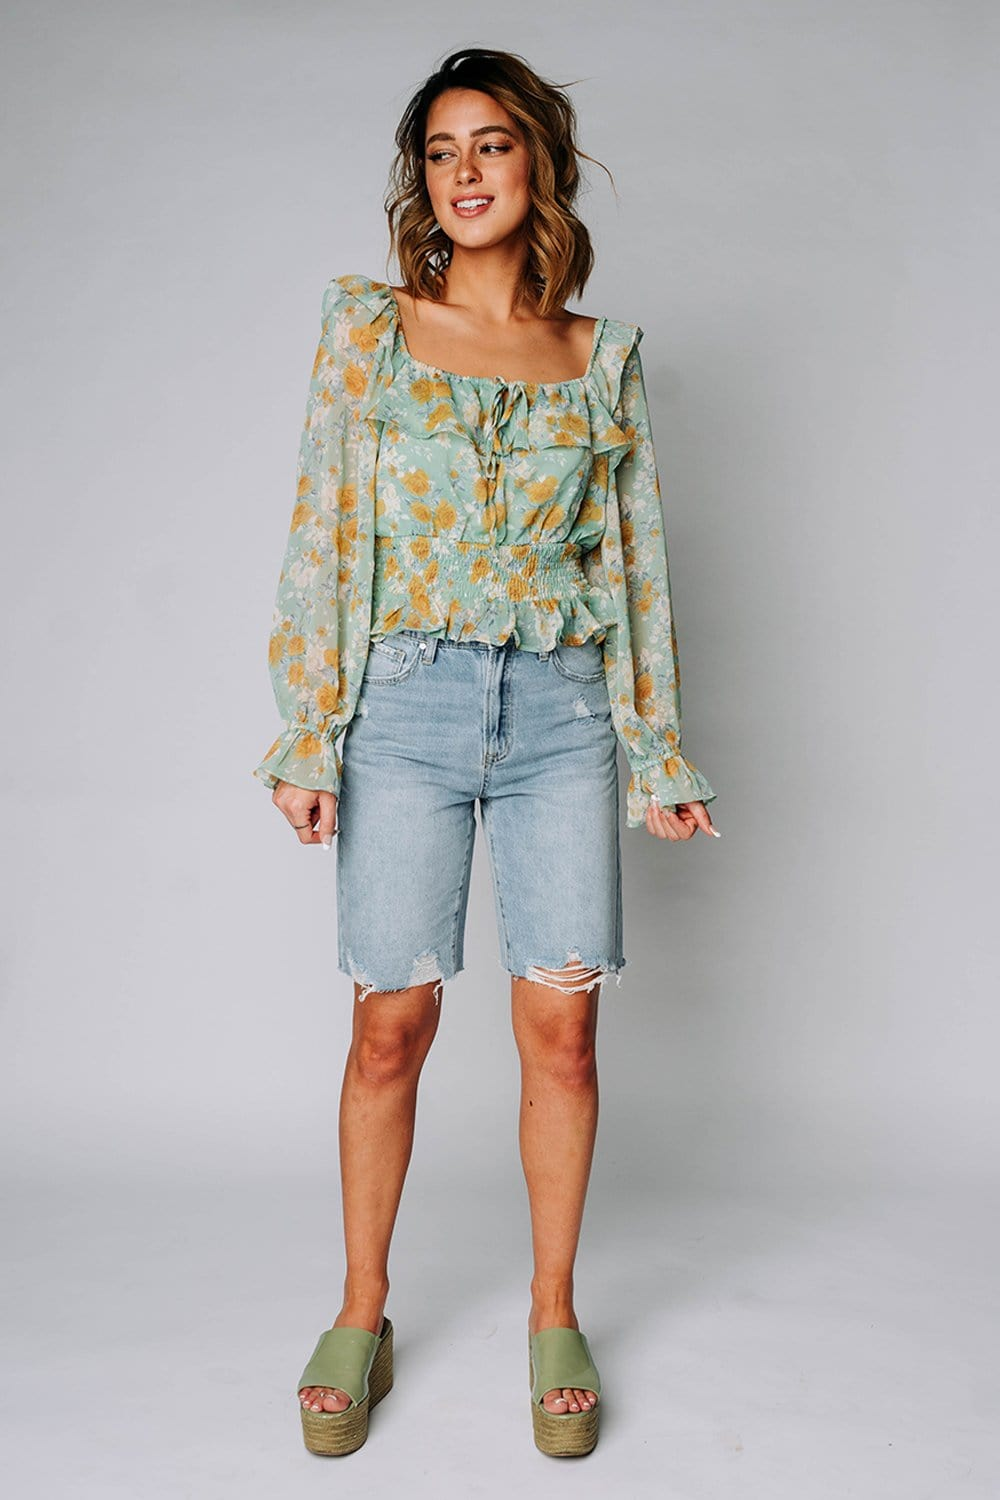 Capitol Reef Smocked Top